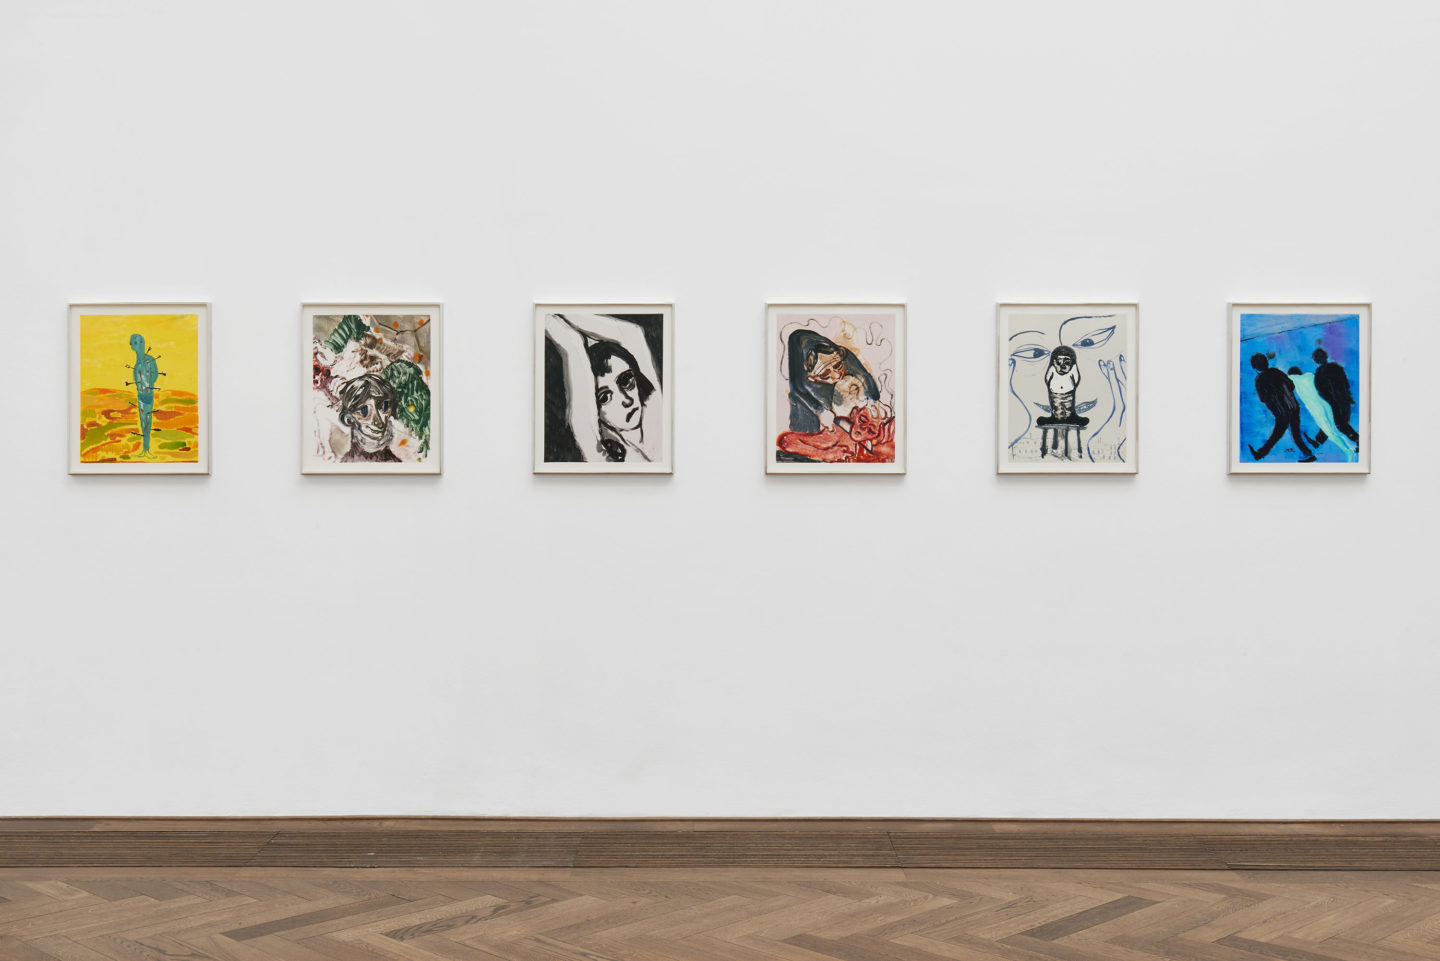 Installation View Sanya Kantarovsky «Disease of the Eyes / view on (f.l.t.r.) Sebastian, Kaput, Change of Heart, Wet Rag, Abuse, Removal III, all 2018» at Kunsthalle Basel, 2018. Photo: Philipp Hänger / Courtesy of the artist; Luhring Augustine, New York; Stuart Shave/Modern Art, London; and Tanya Leighton Gallery, Berlin